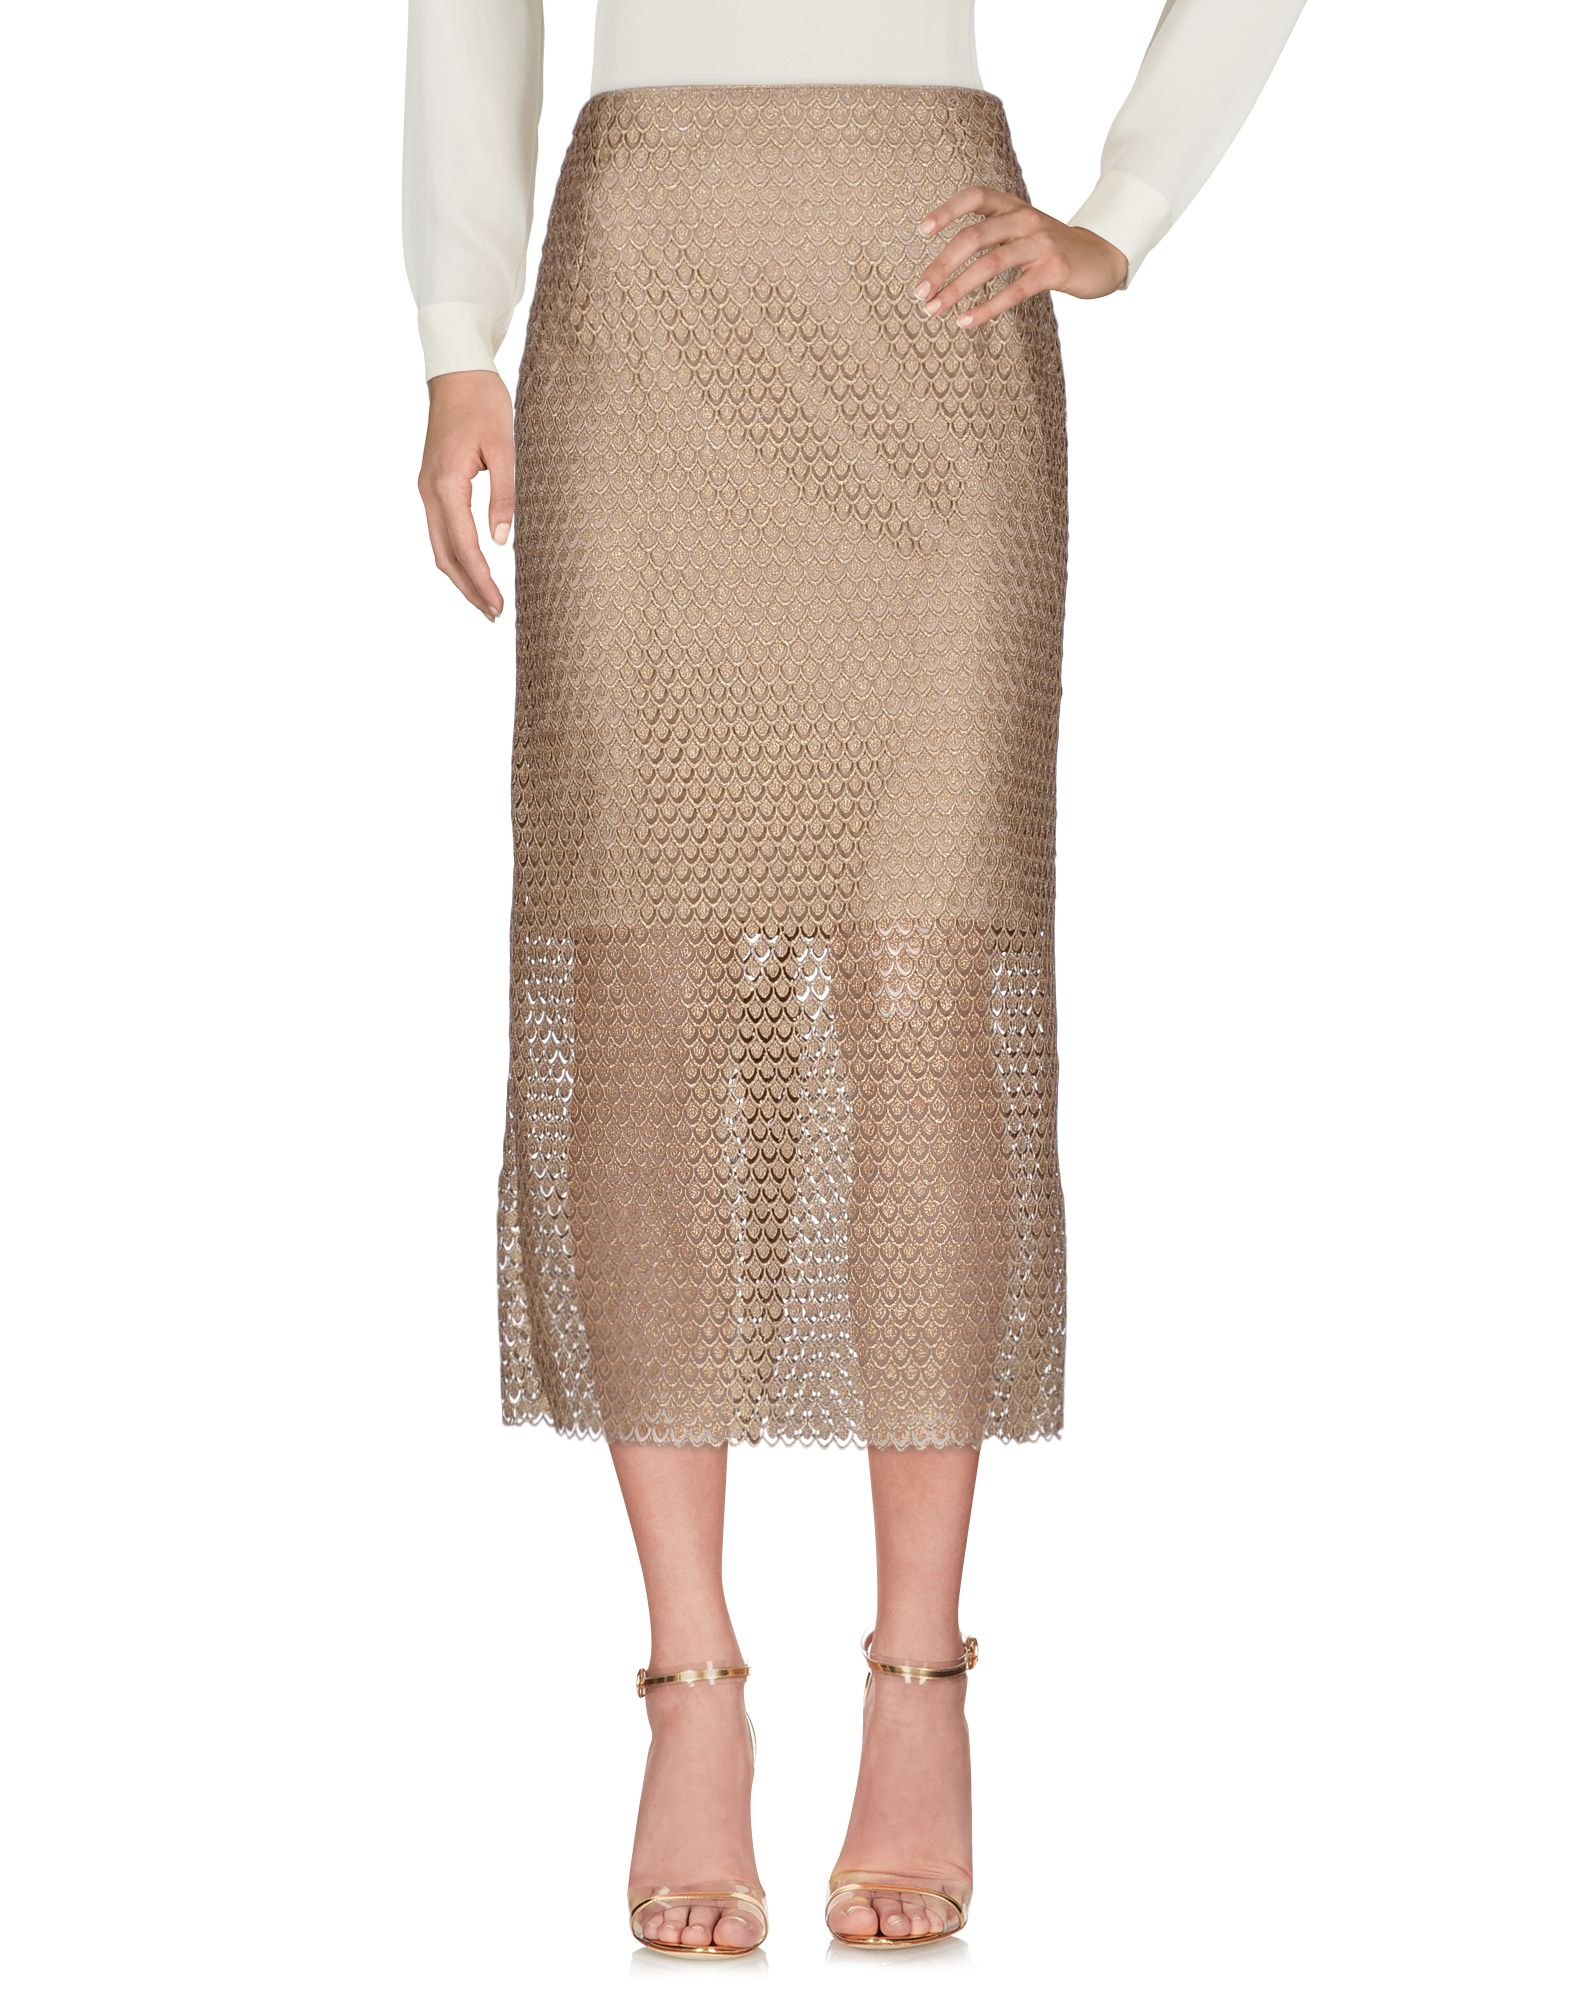 MELAMPO Maxi Skirts in Gold